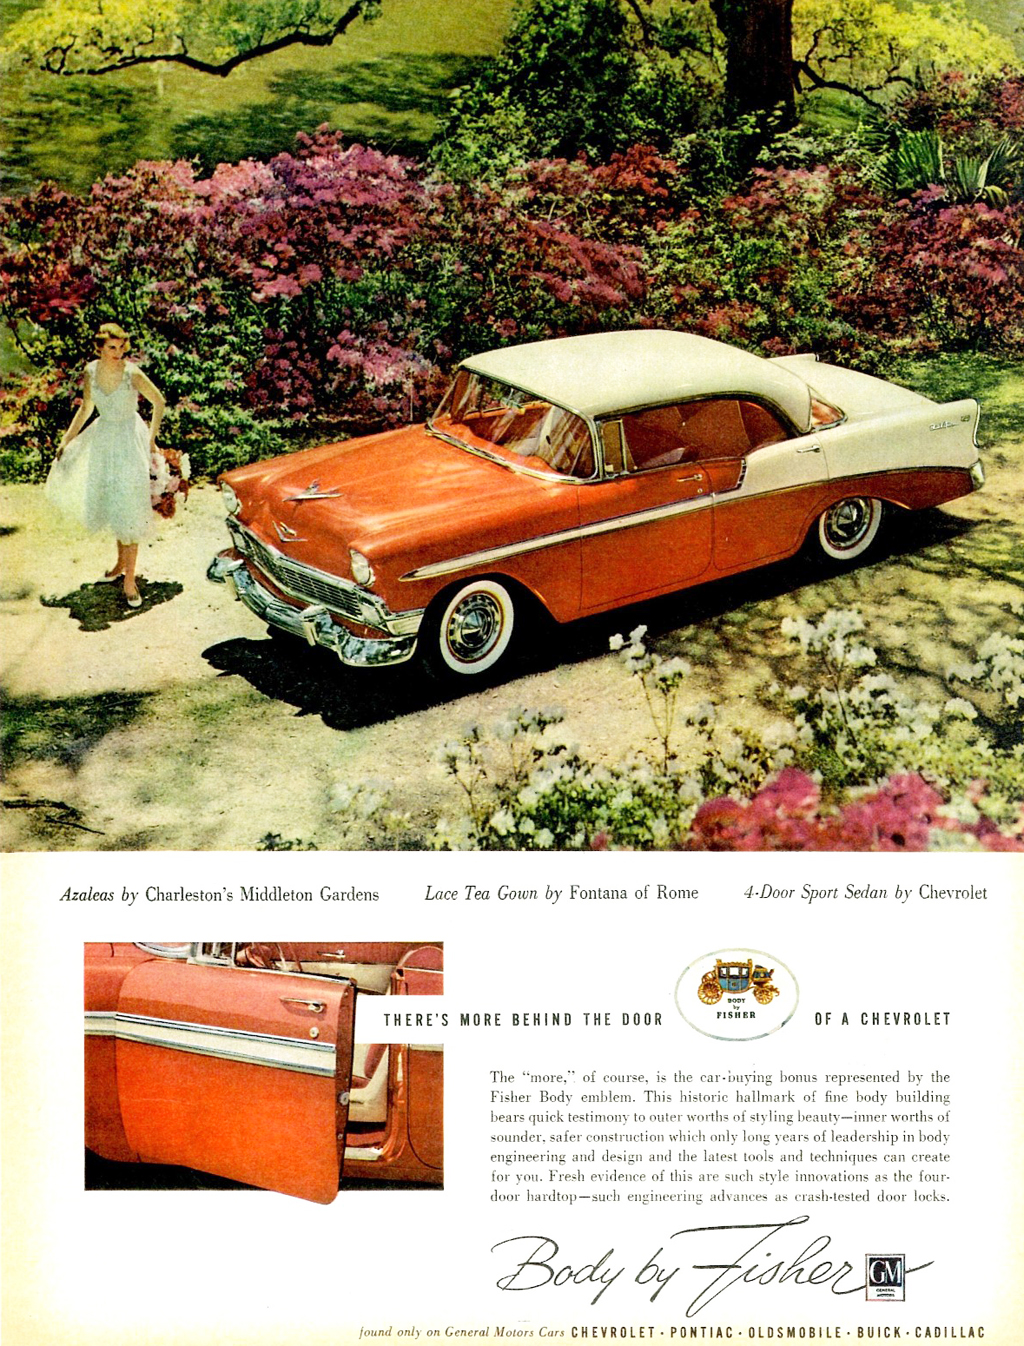 Bel Air Car >> 1956 Chevrolet Bel Air body by Fisher ad | CLASSIC CARS ...